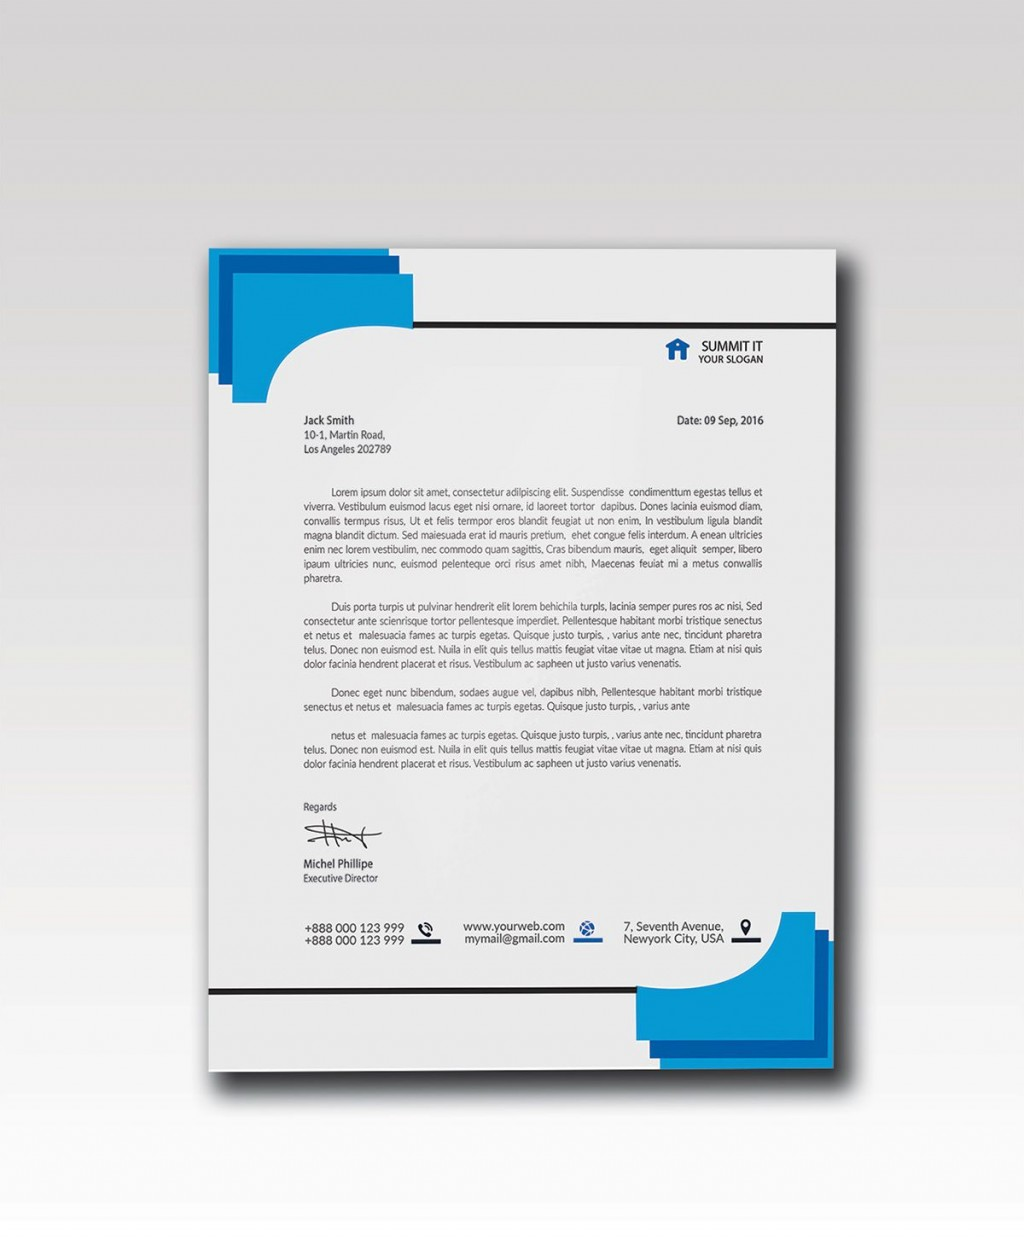 003 Impressive Letterhead Template Free Download Psd Sample  Corporate A4Large